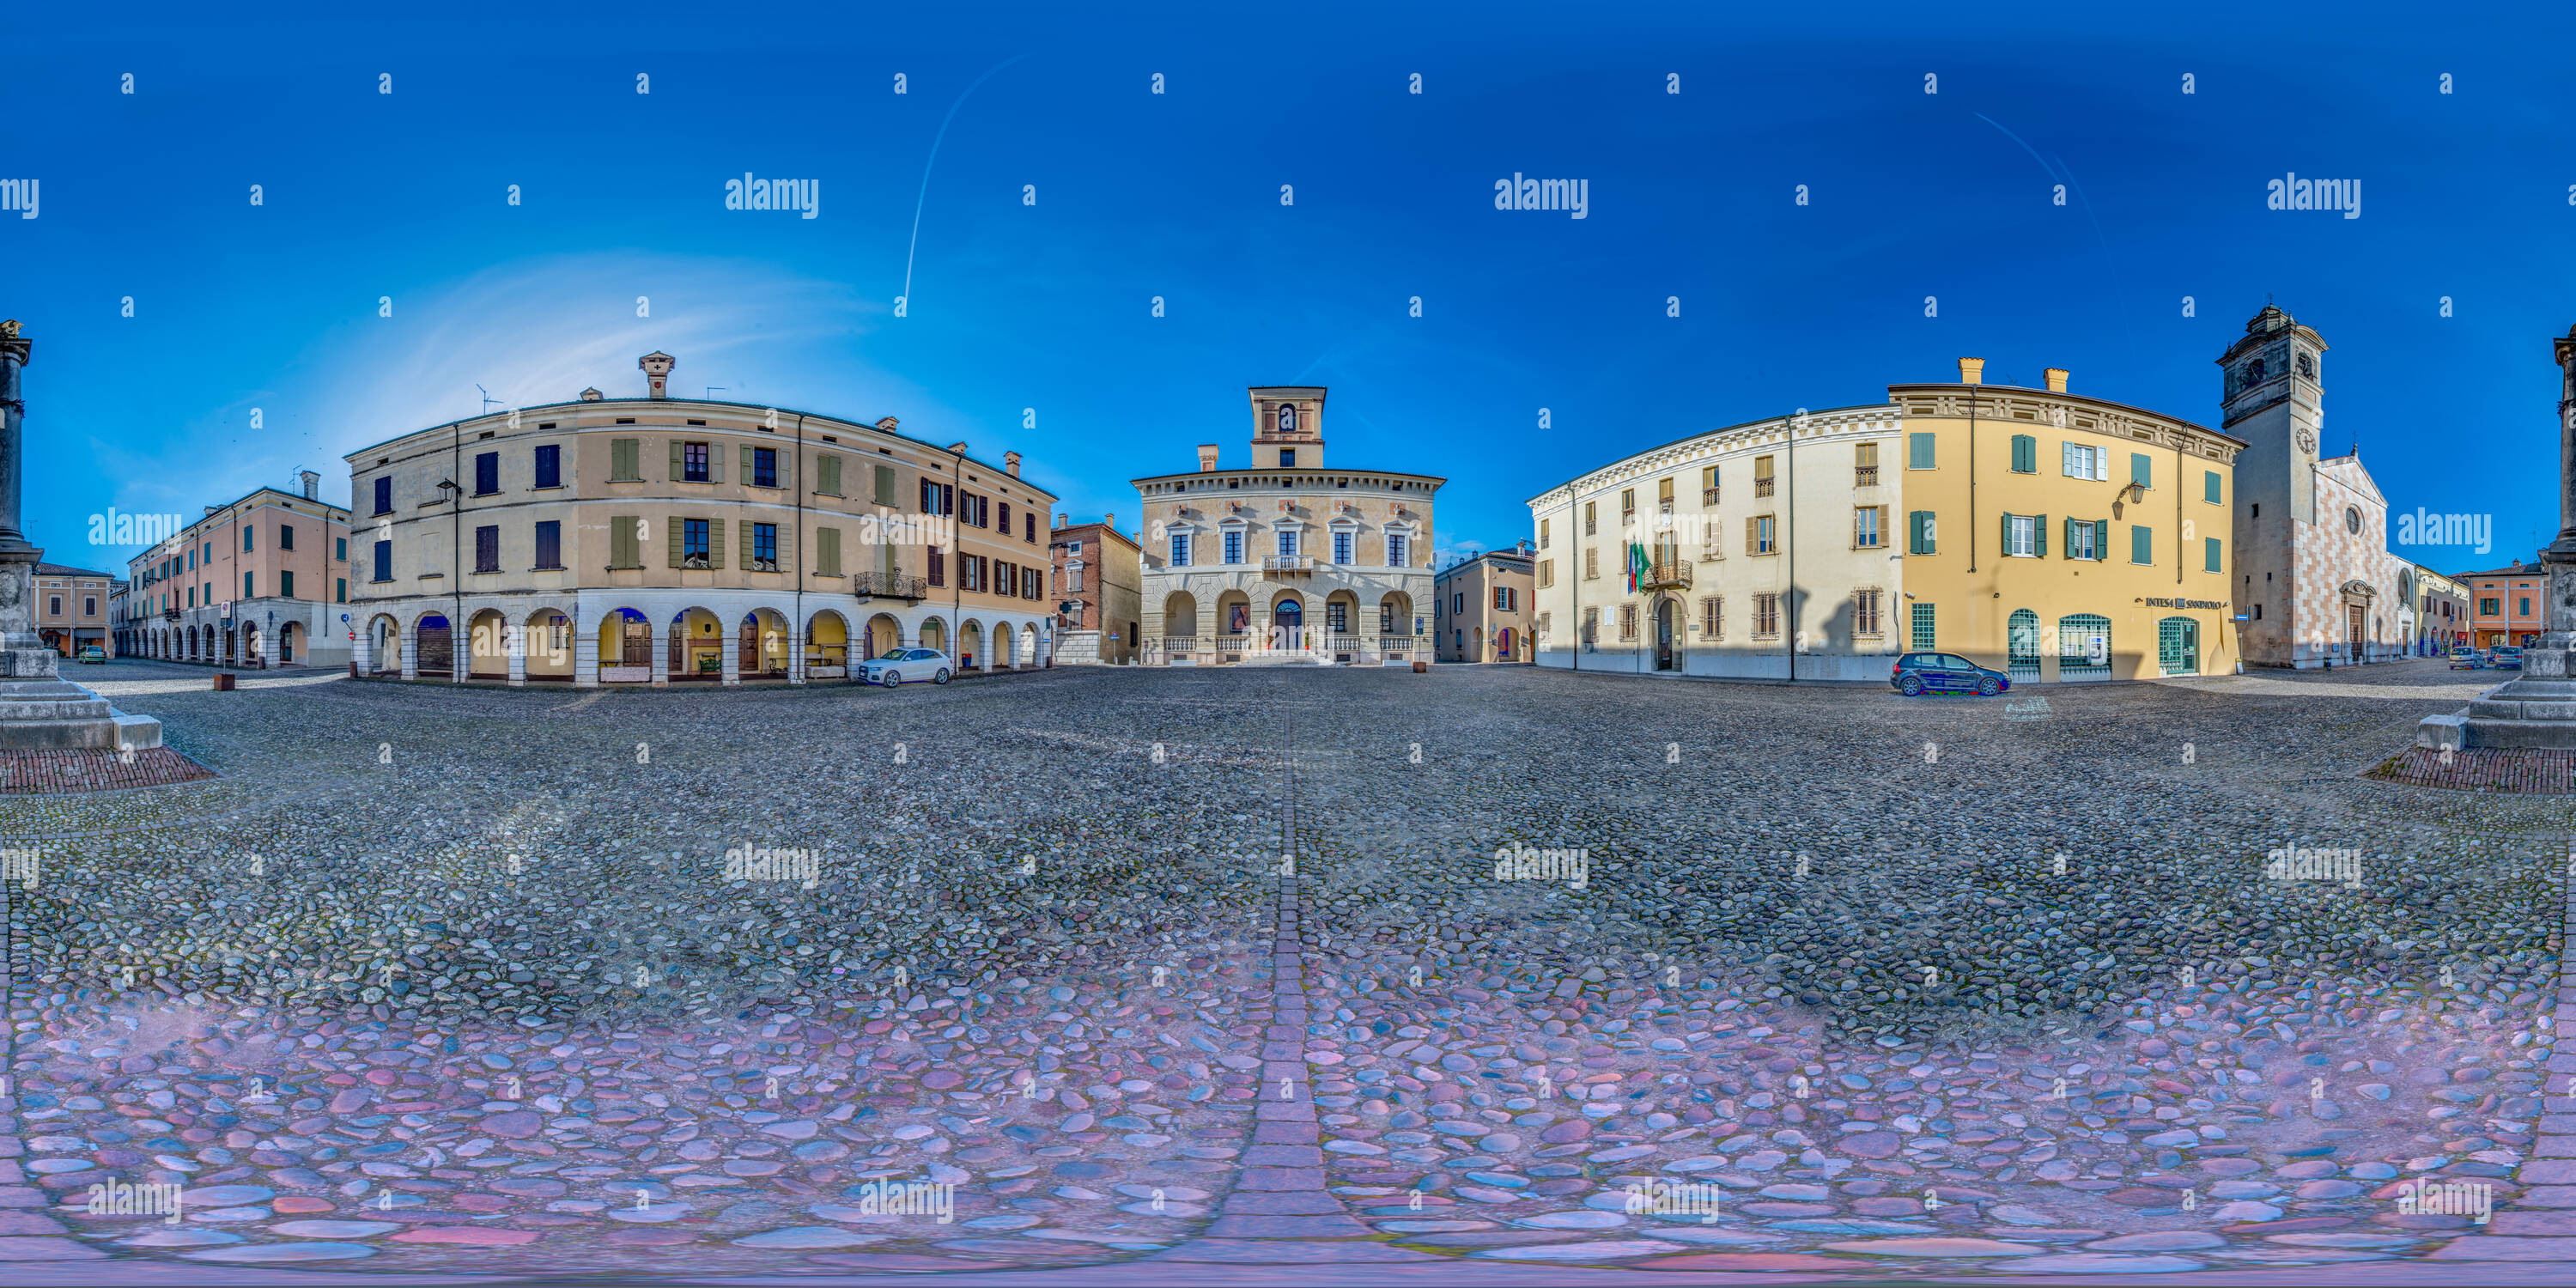 Piazza Ducale, Sabbioneta (MN) Italy - Stock Image